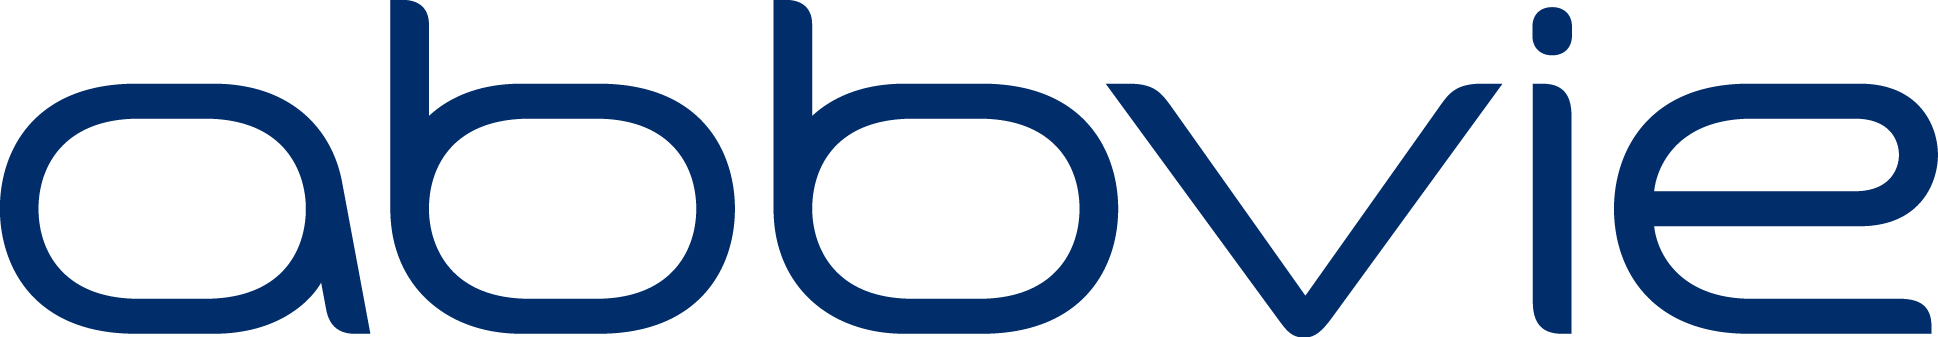 Abbvie logo transparent